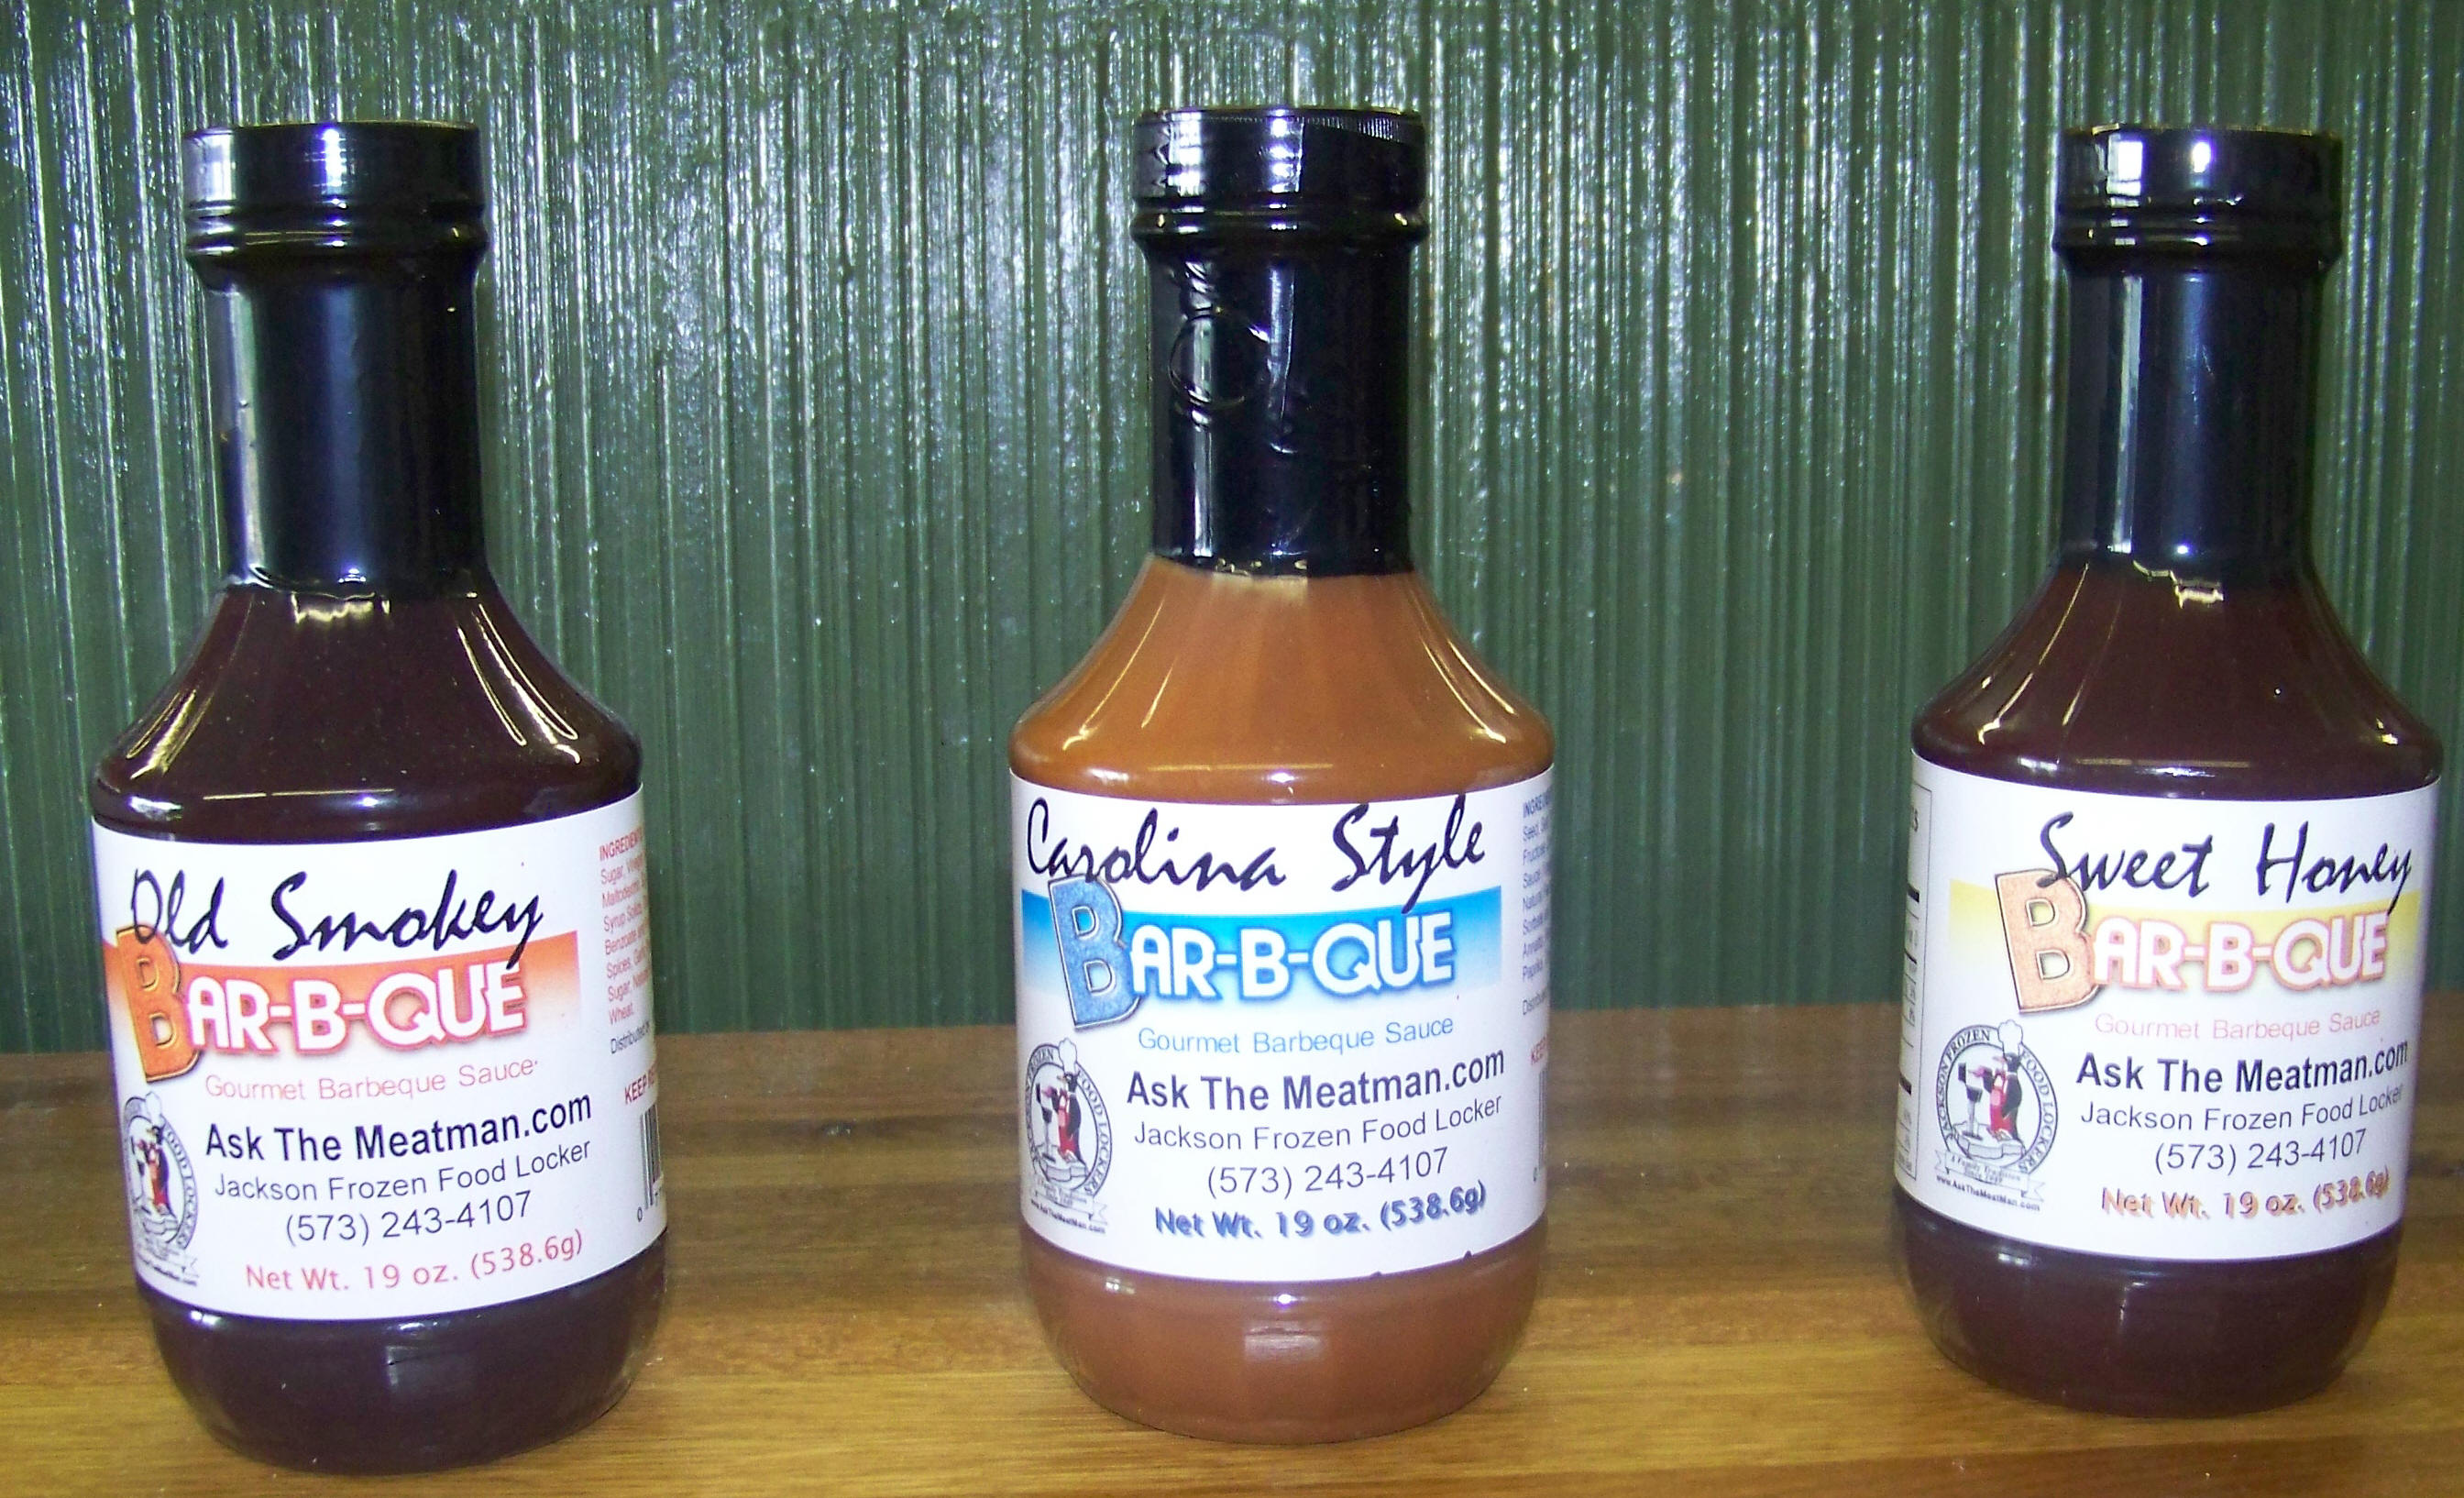 Variety Pack of BBQ Sauce. Old Smoke, Carolina Style and Sweet Honey.